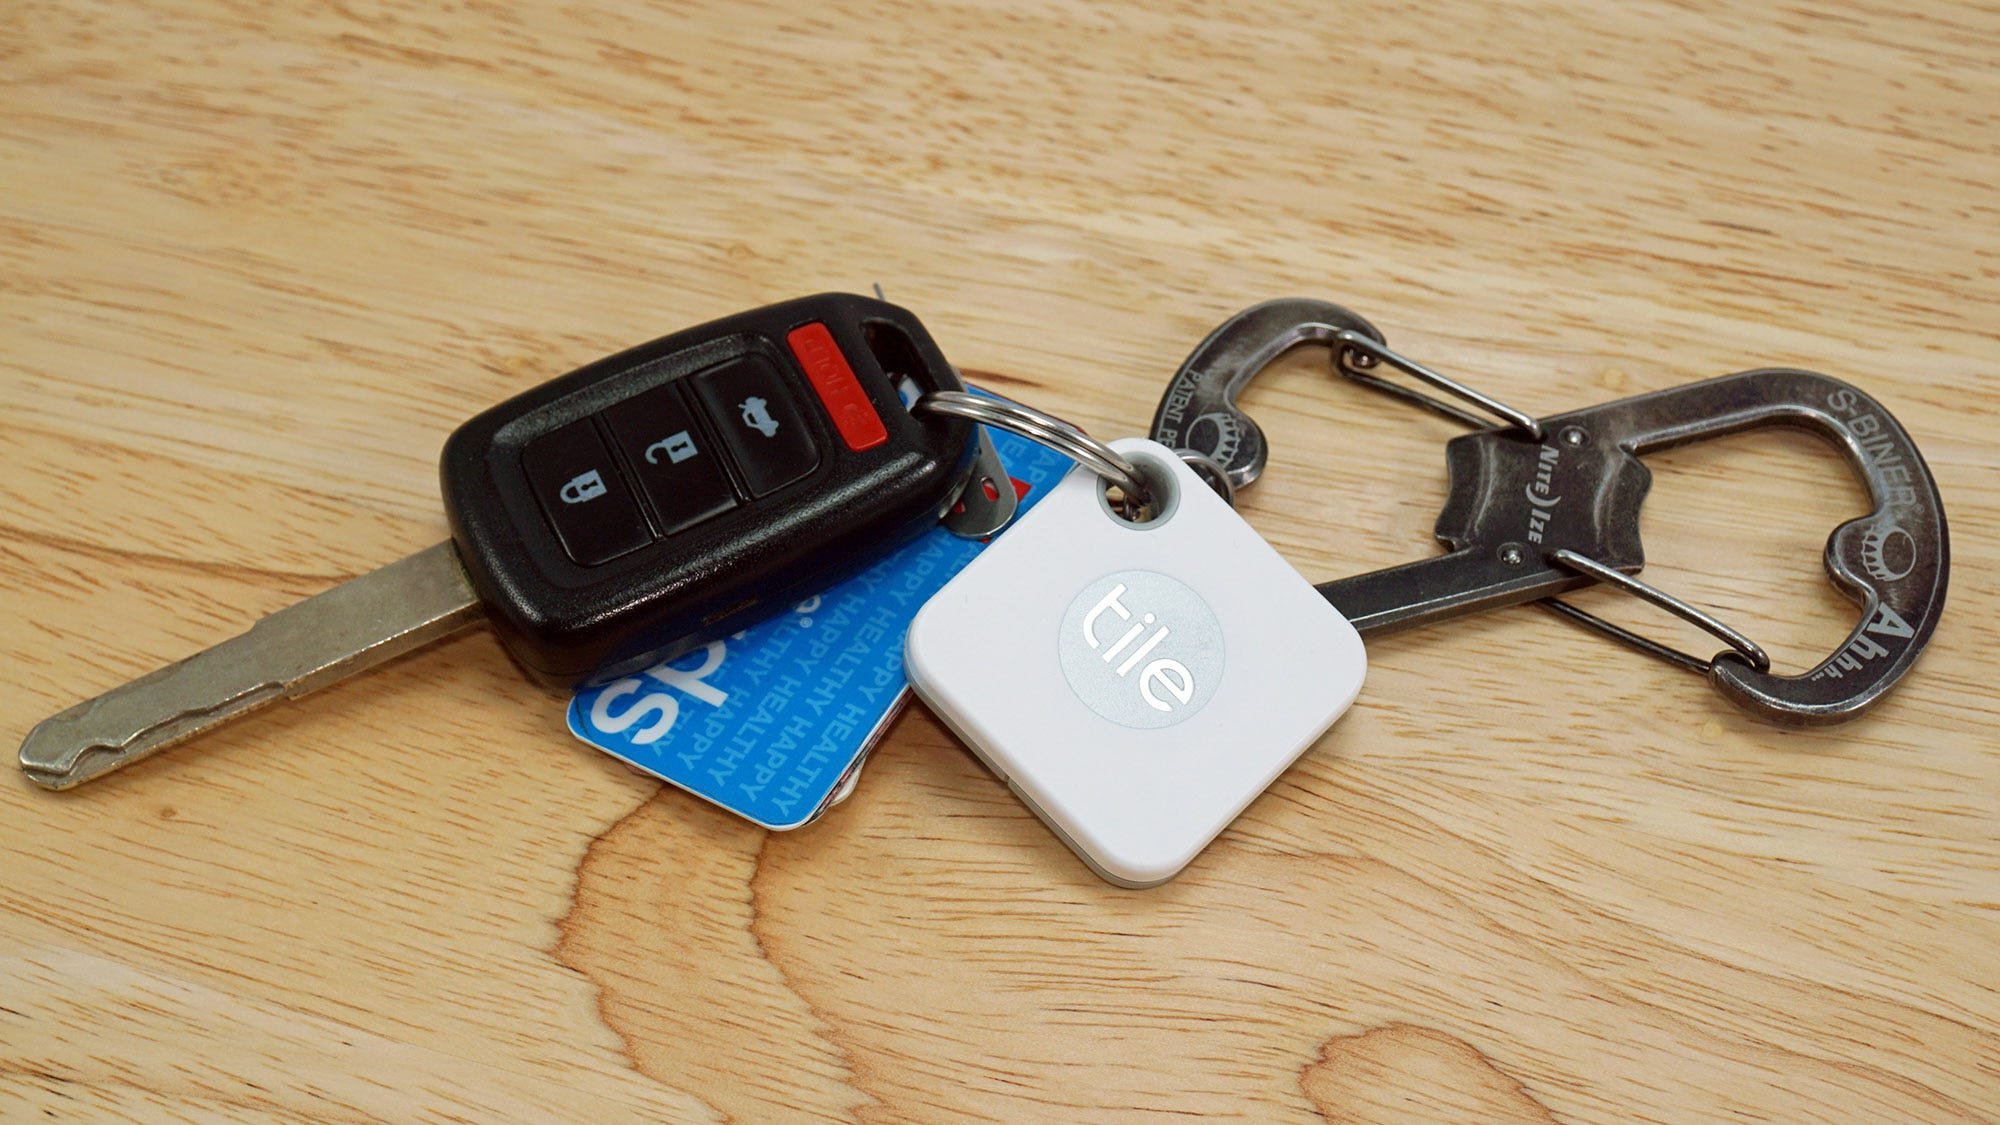 Car keys with a caribiner and Tile Mate tracker.